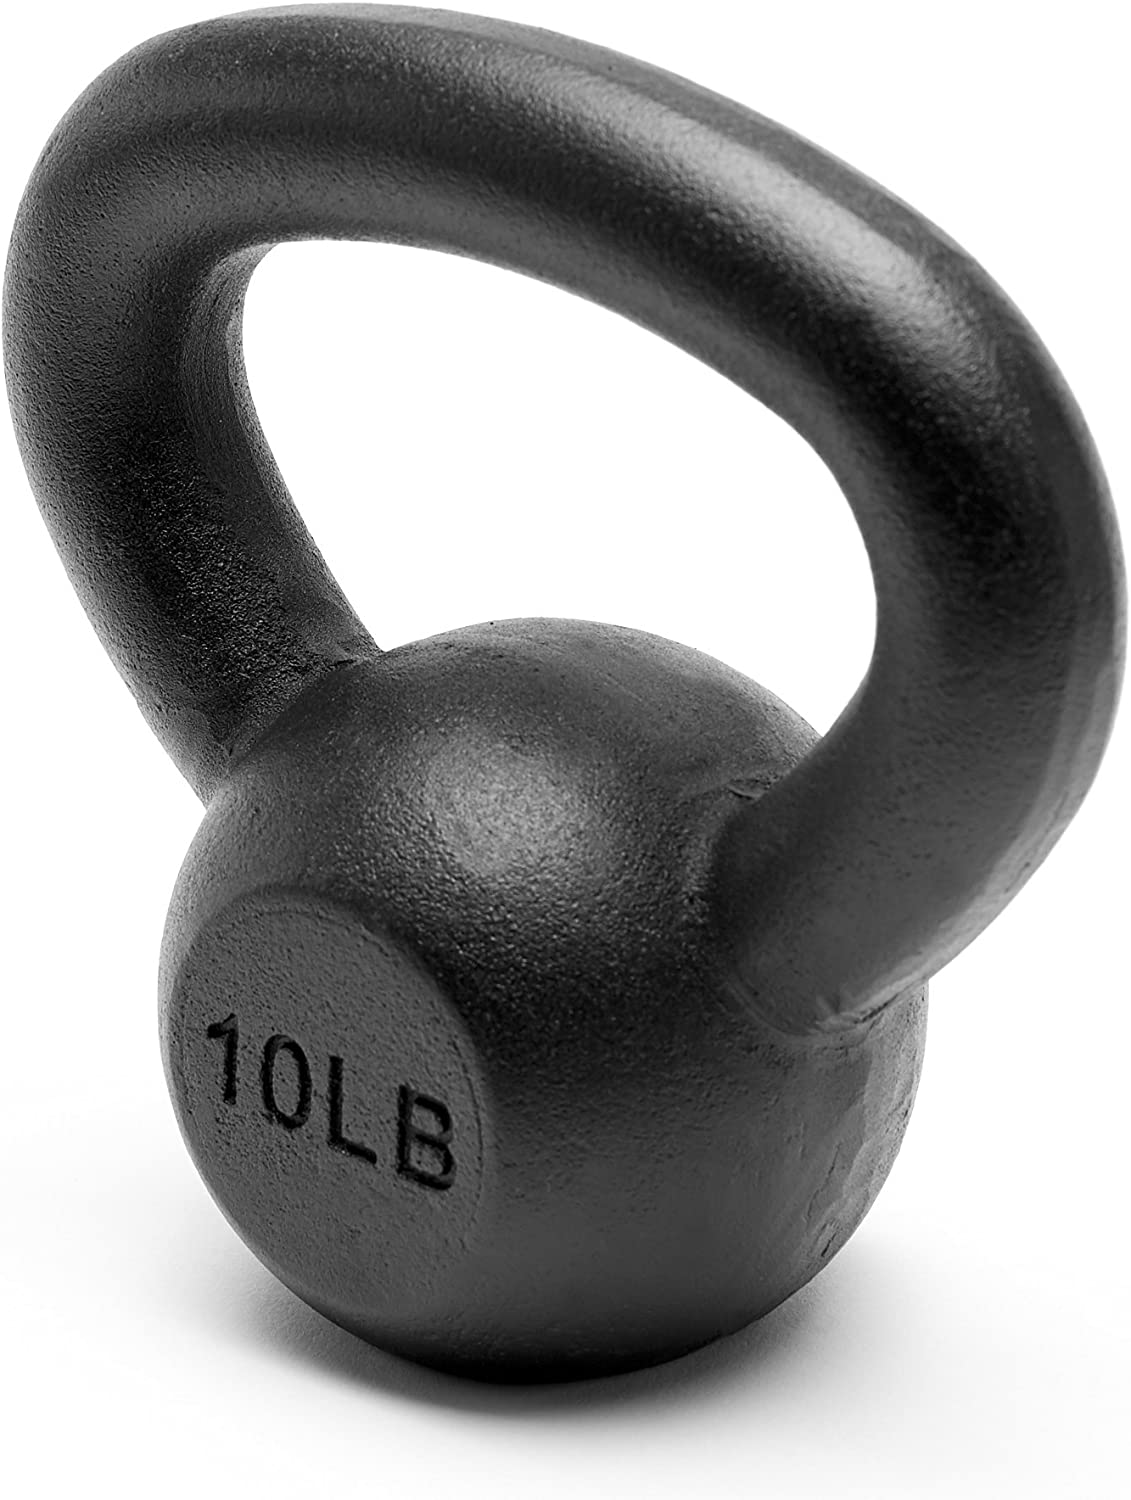 10 15 30 25 45 lbs All Combination 35 40 20 Unipack Powder Coated Solid Cast Iron Kettlebell Weights Set 5